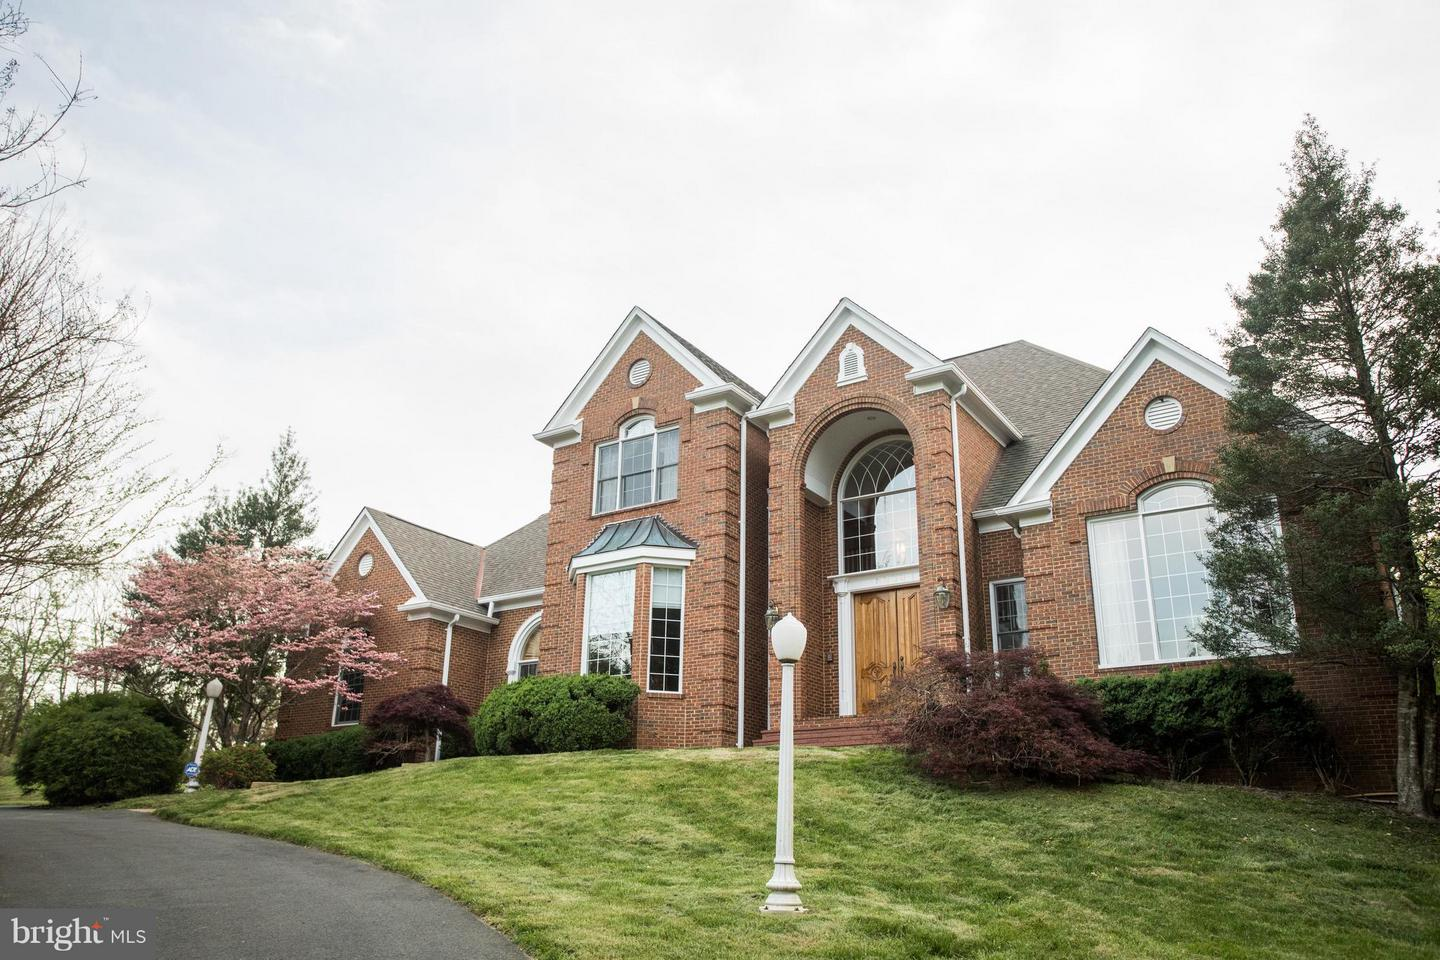 Additional photo for property listing at 7208 Wolf Run Shoals Rd 7208 Wolf Run Shoals Rd Fairfax Station, Virginia 22039 United States